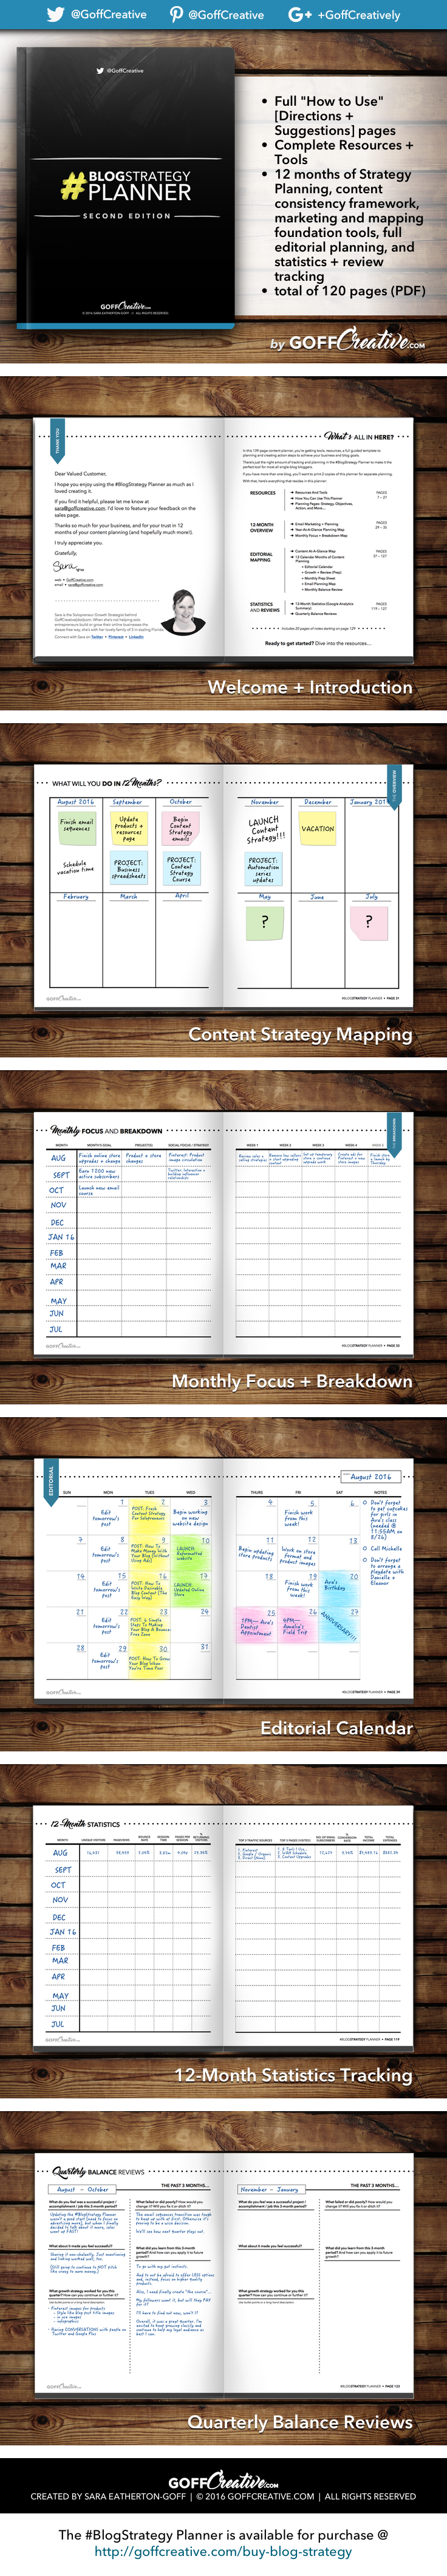 Sneak peeks of the #BlogStrategy Planner | 120 pages | PDF duplicatable planner (one-time buy) | by Sara Eatherton-Goff of GoffCreative.com